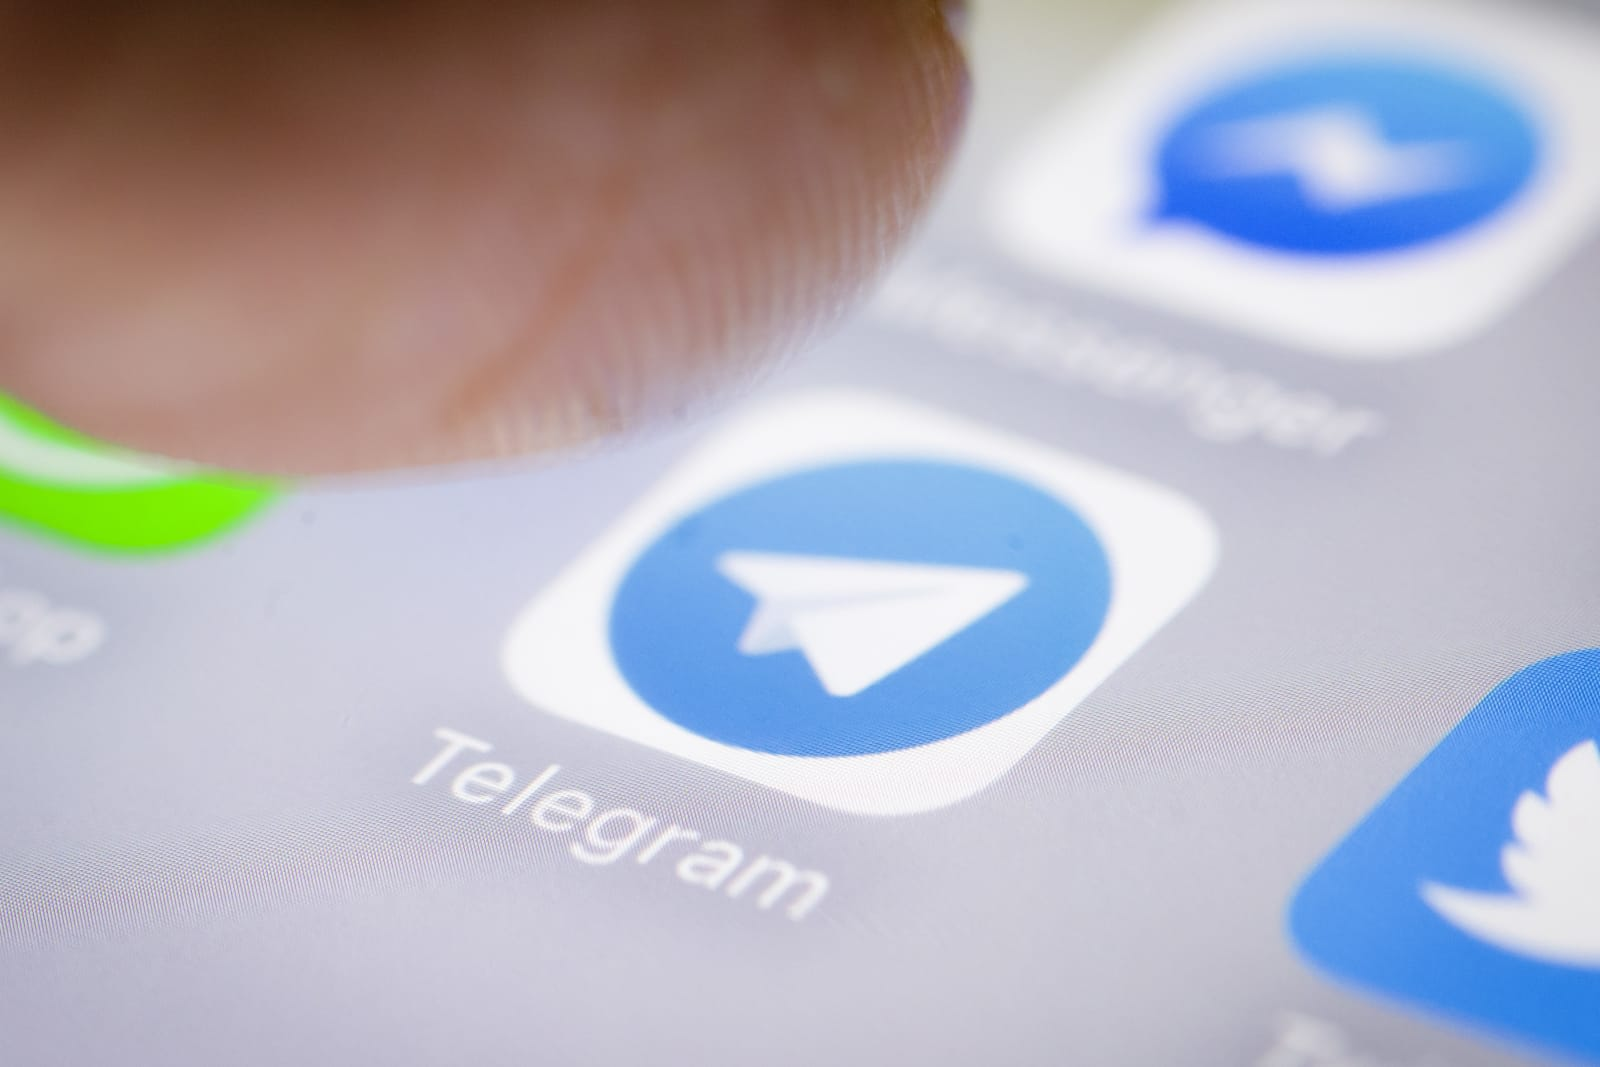 Attackers used Telegram to deliver cryptocurrency-mining malware